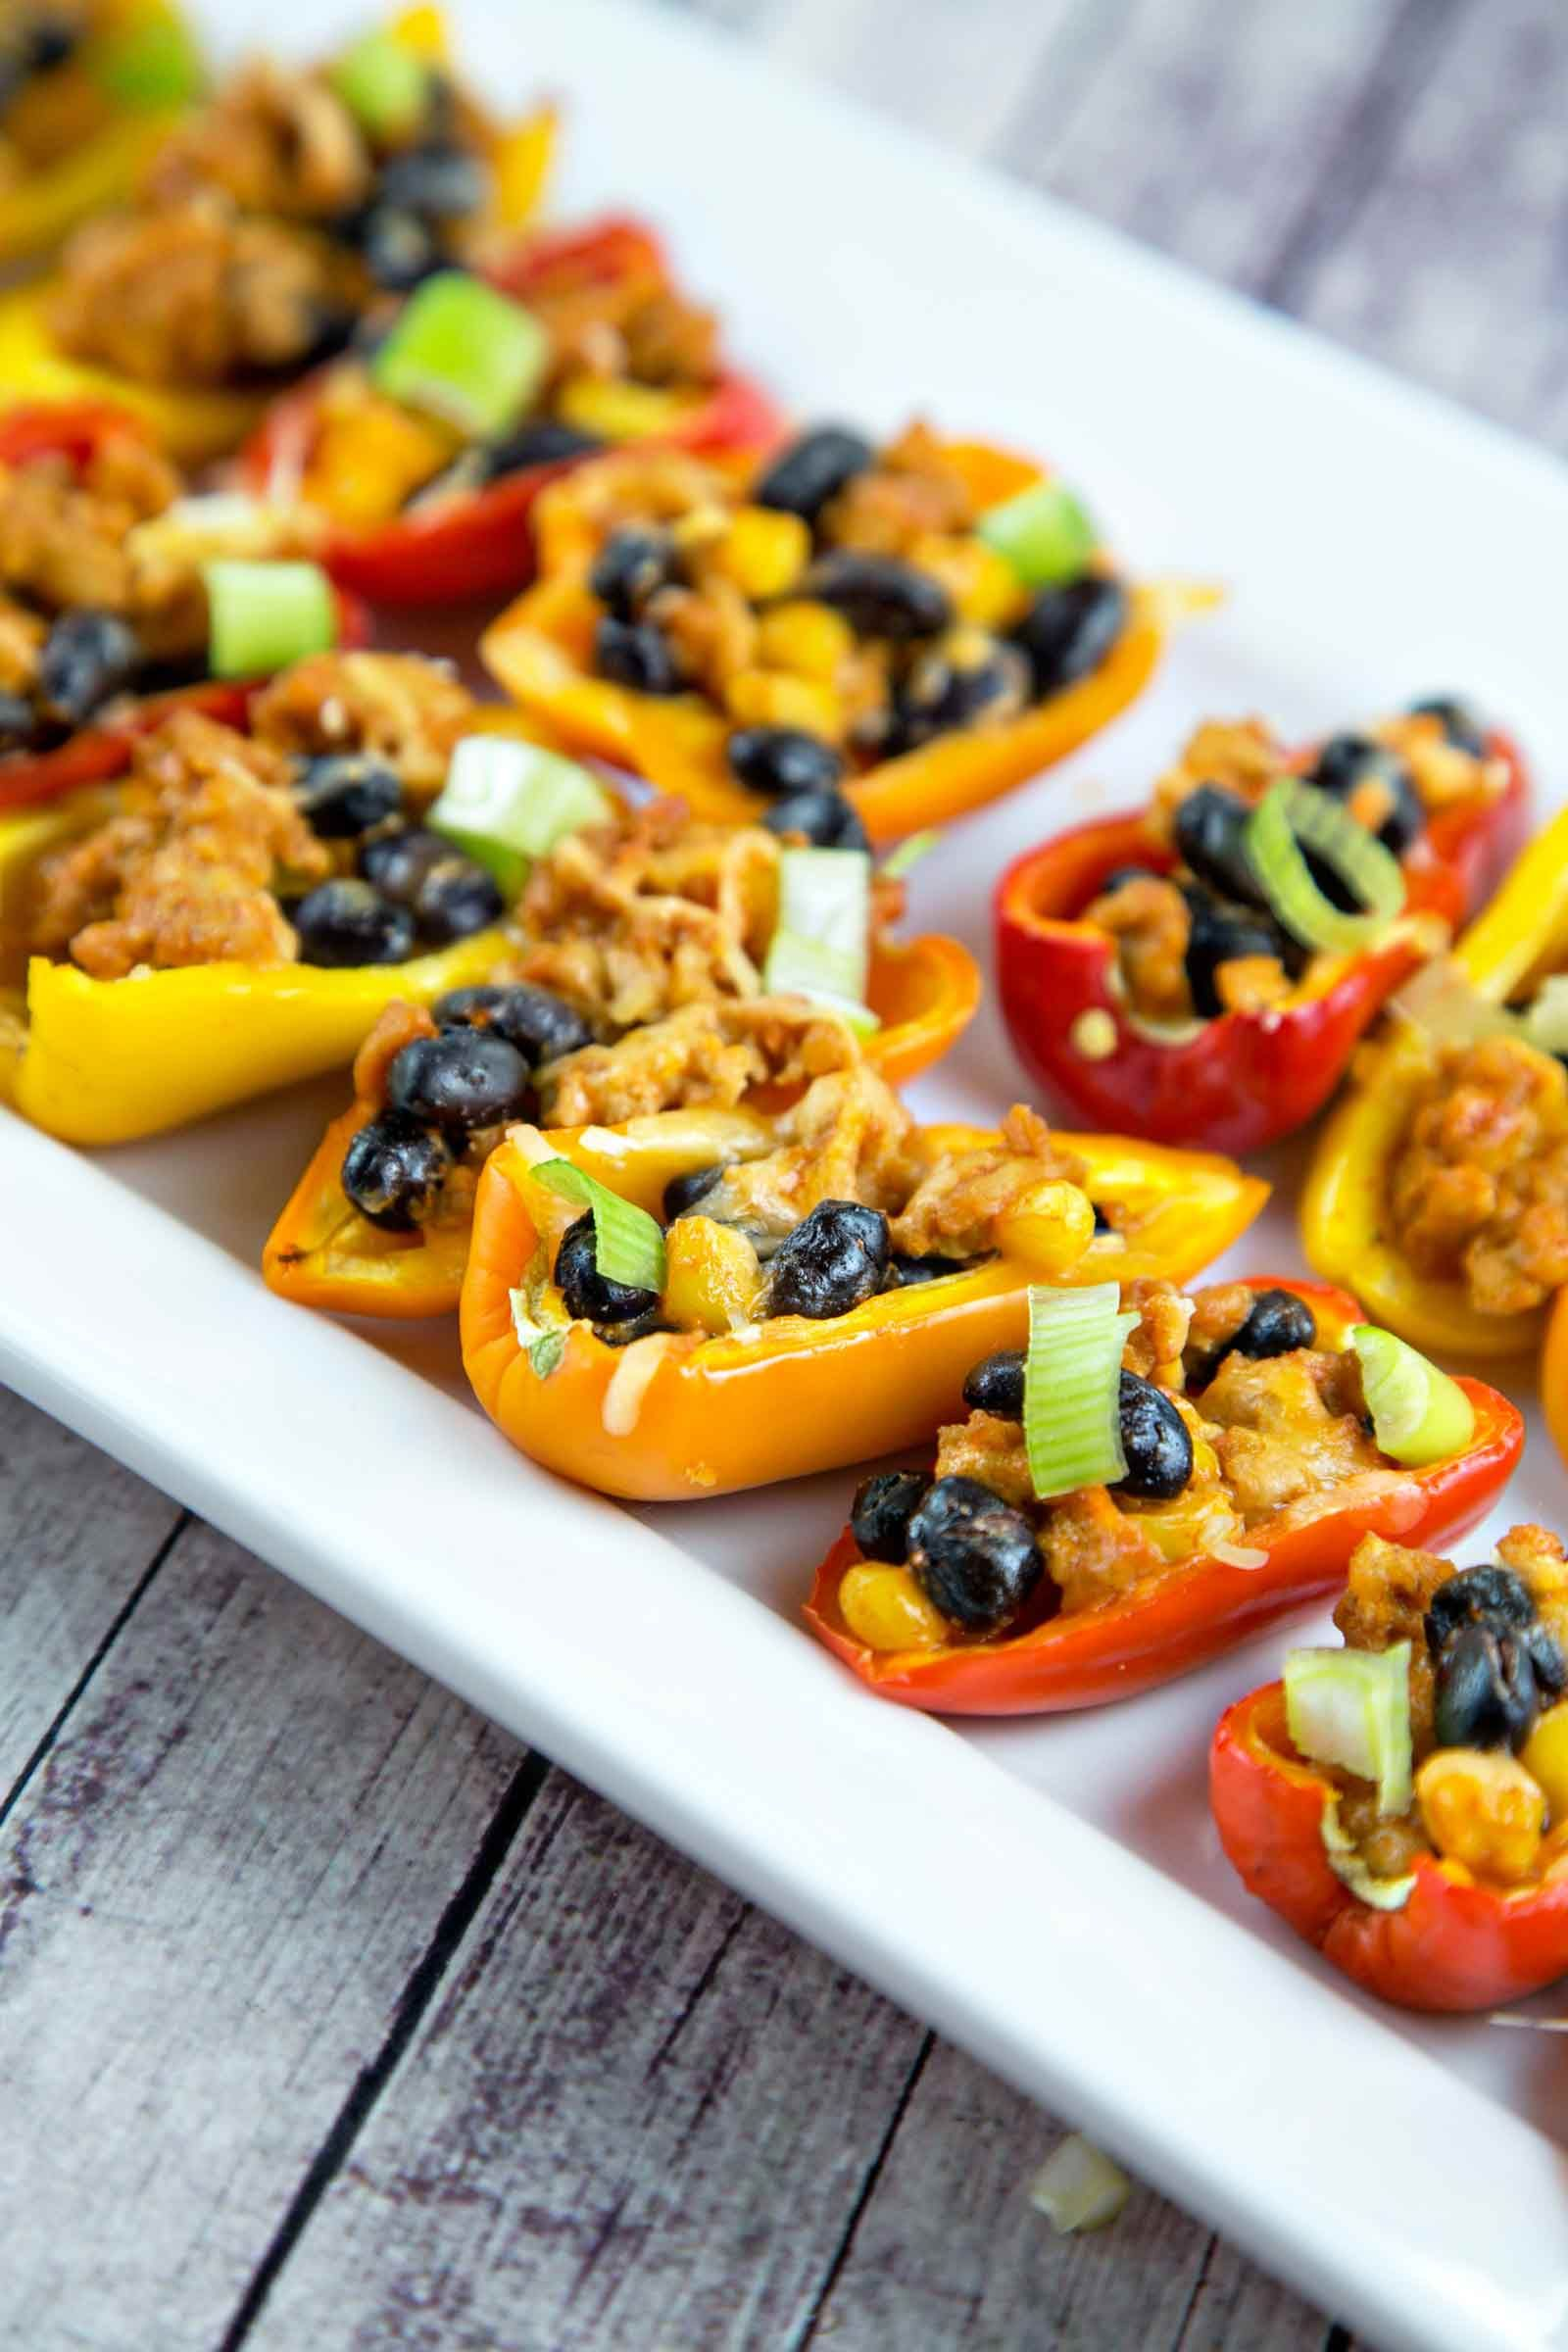 26 healthy superbowl party food recipes sweet and savory food 26 healthy superbowl party food recipes sweet and savory forumfinder Image collections